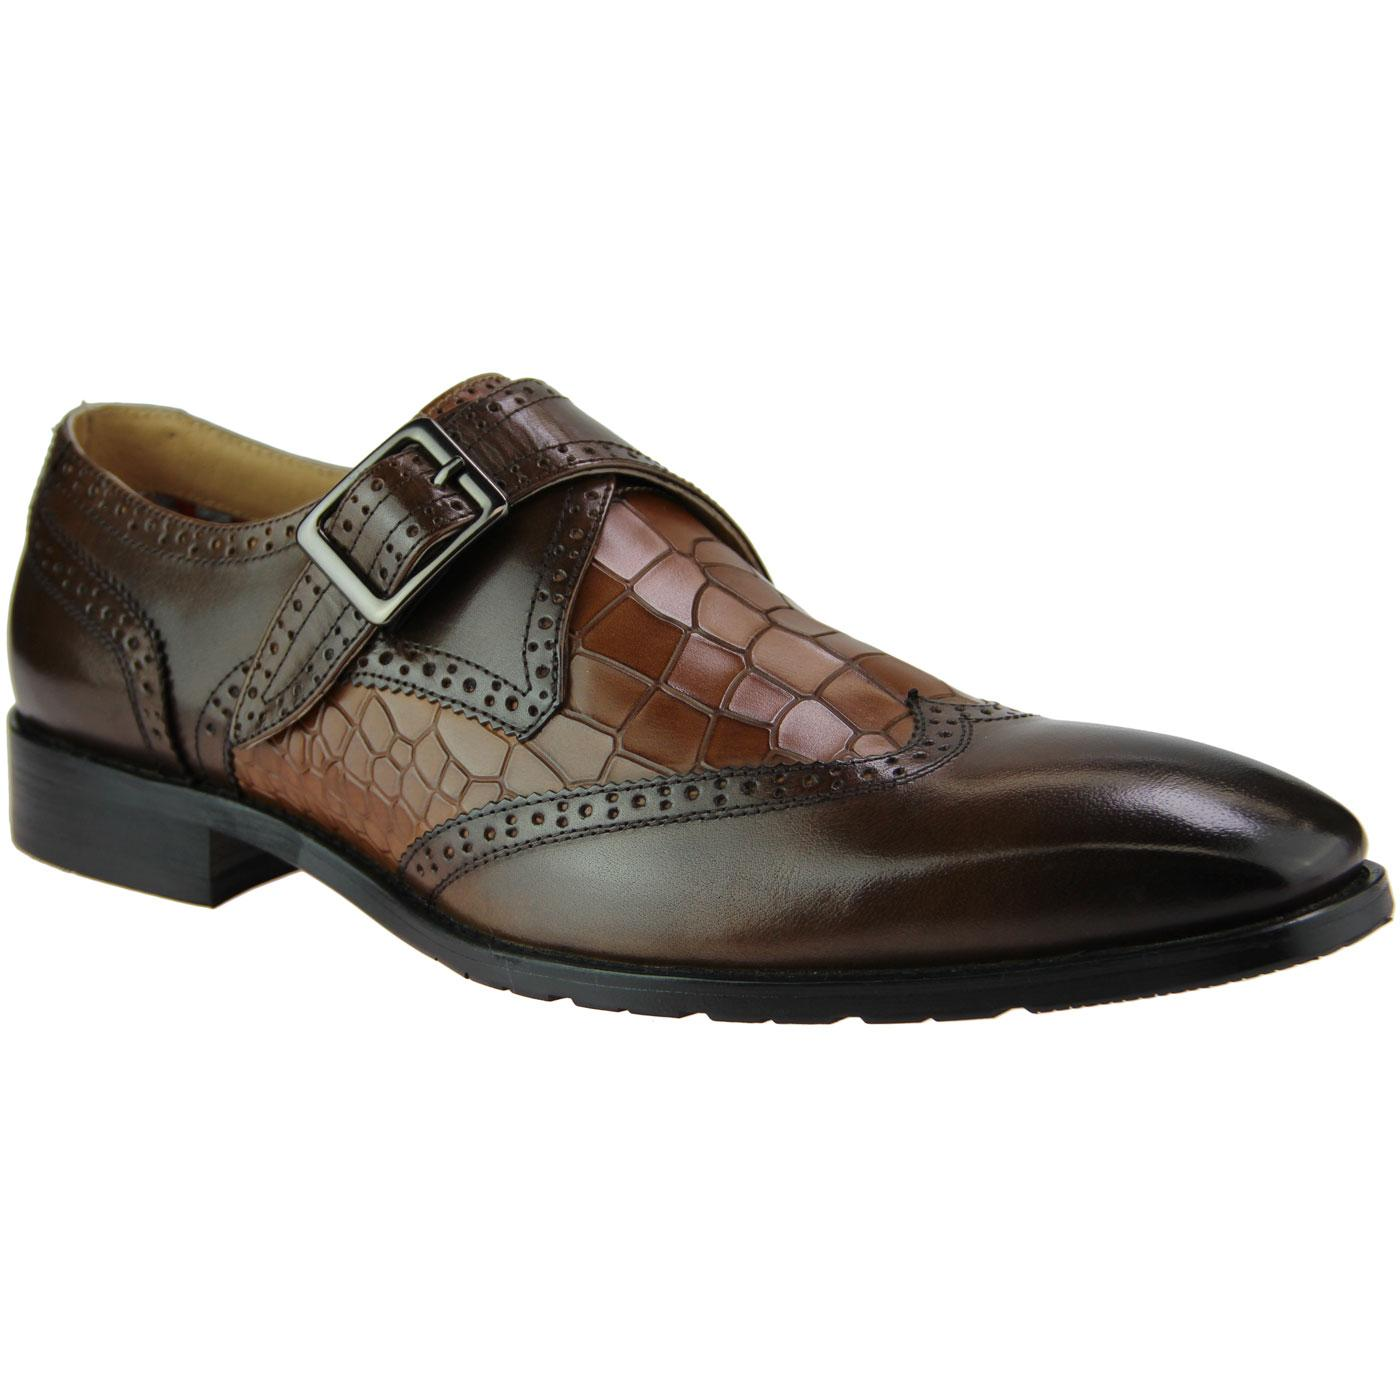 Cutler PAOLO VANDINI Croc Monk Strap Brogues BROWN